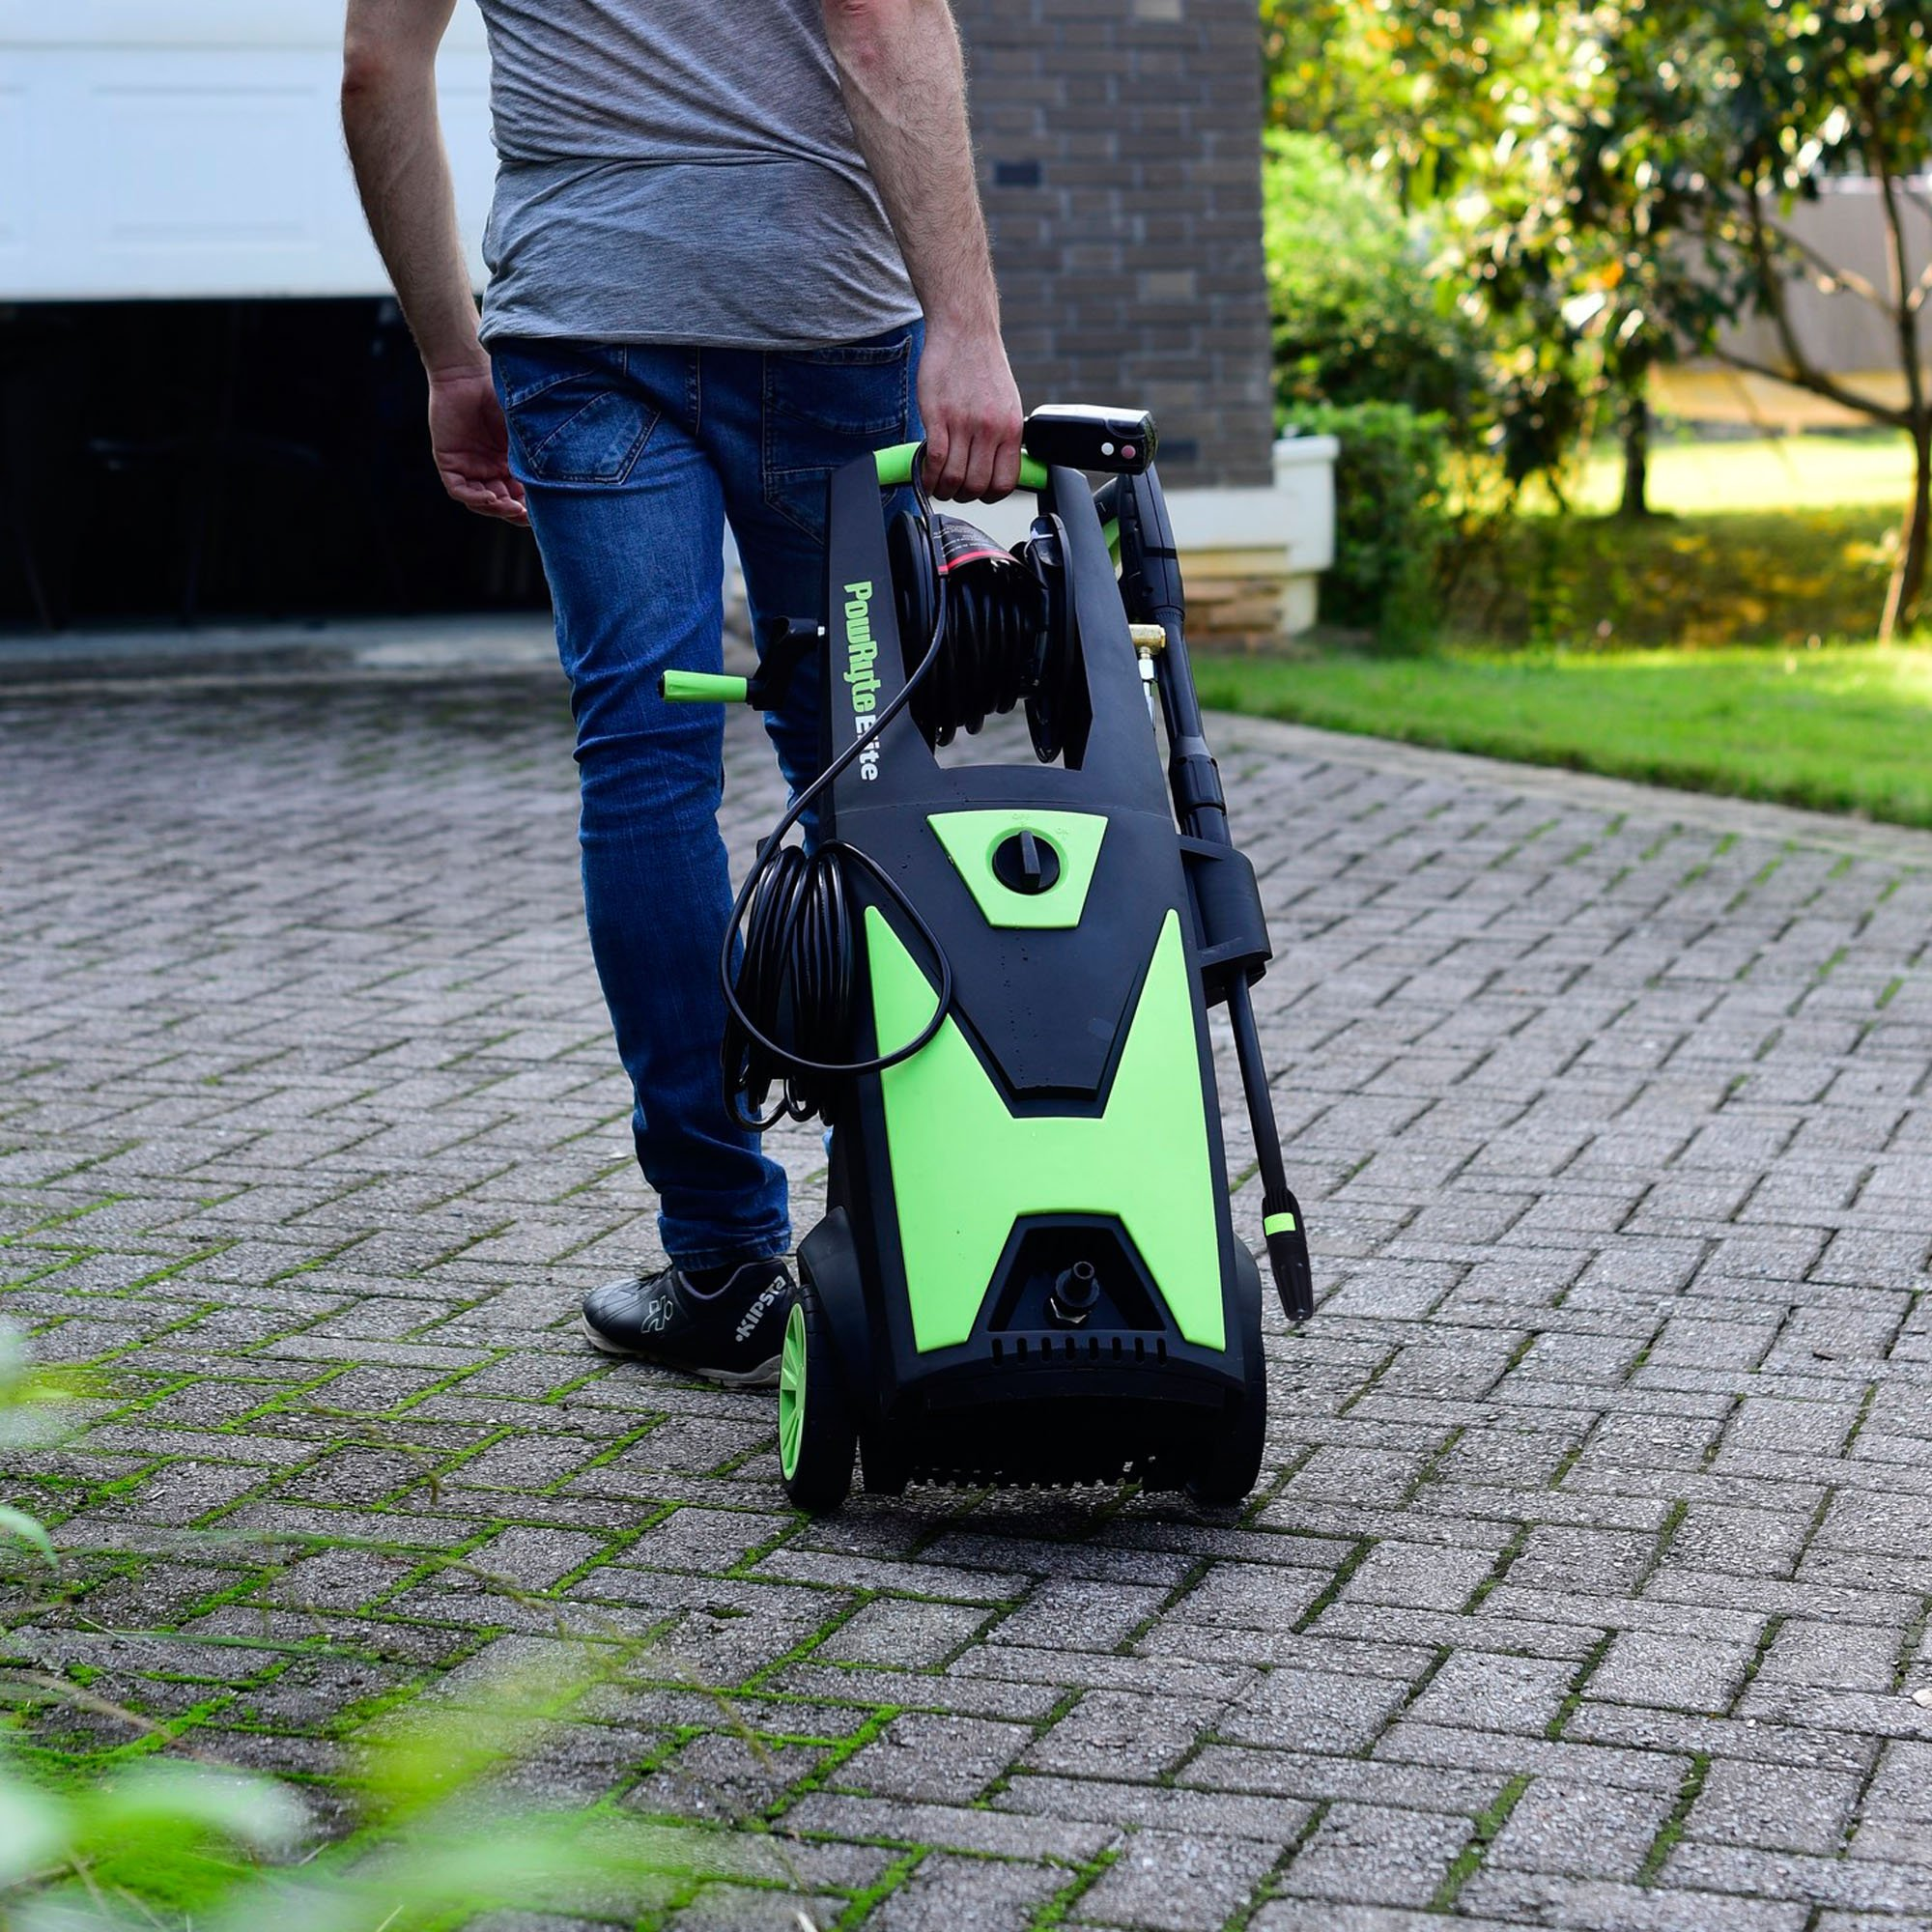 PowRyte Elite Electric Pressure Washer, 2200PSI 2.0GPM Power Washer with Hose Reel, Extra Turbo Nozzle, Induction Motor by PowRyte (Image #5)